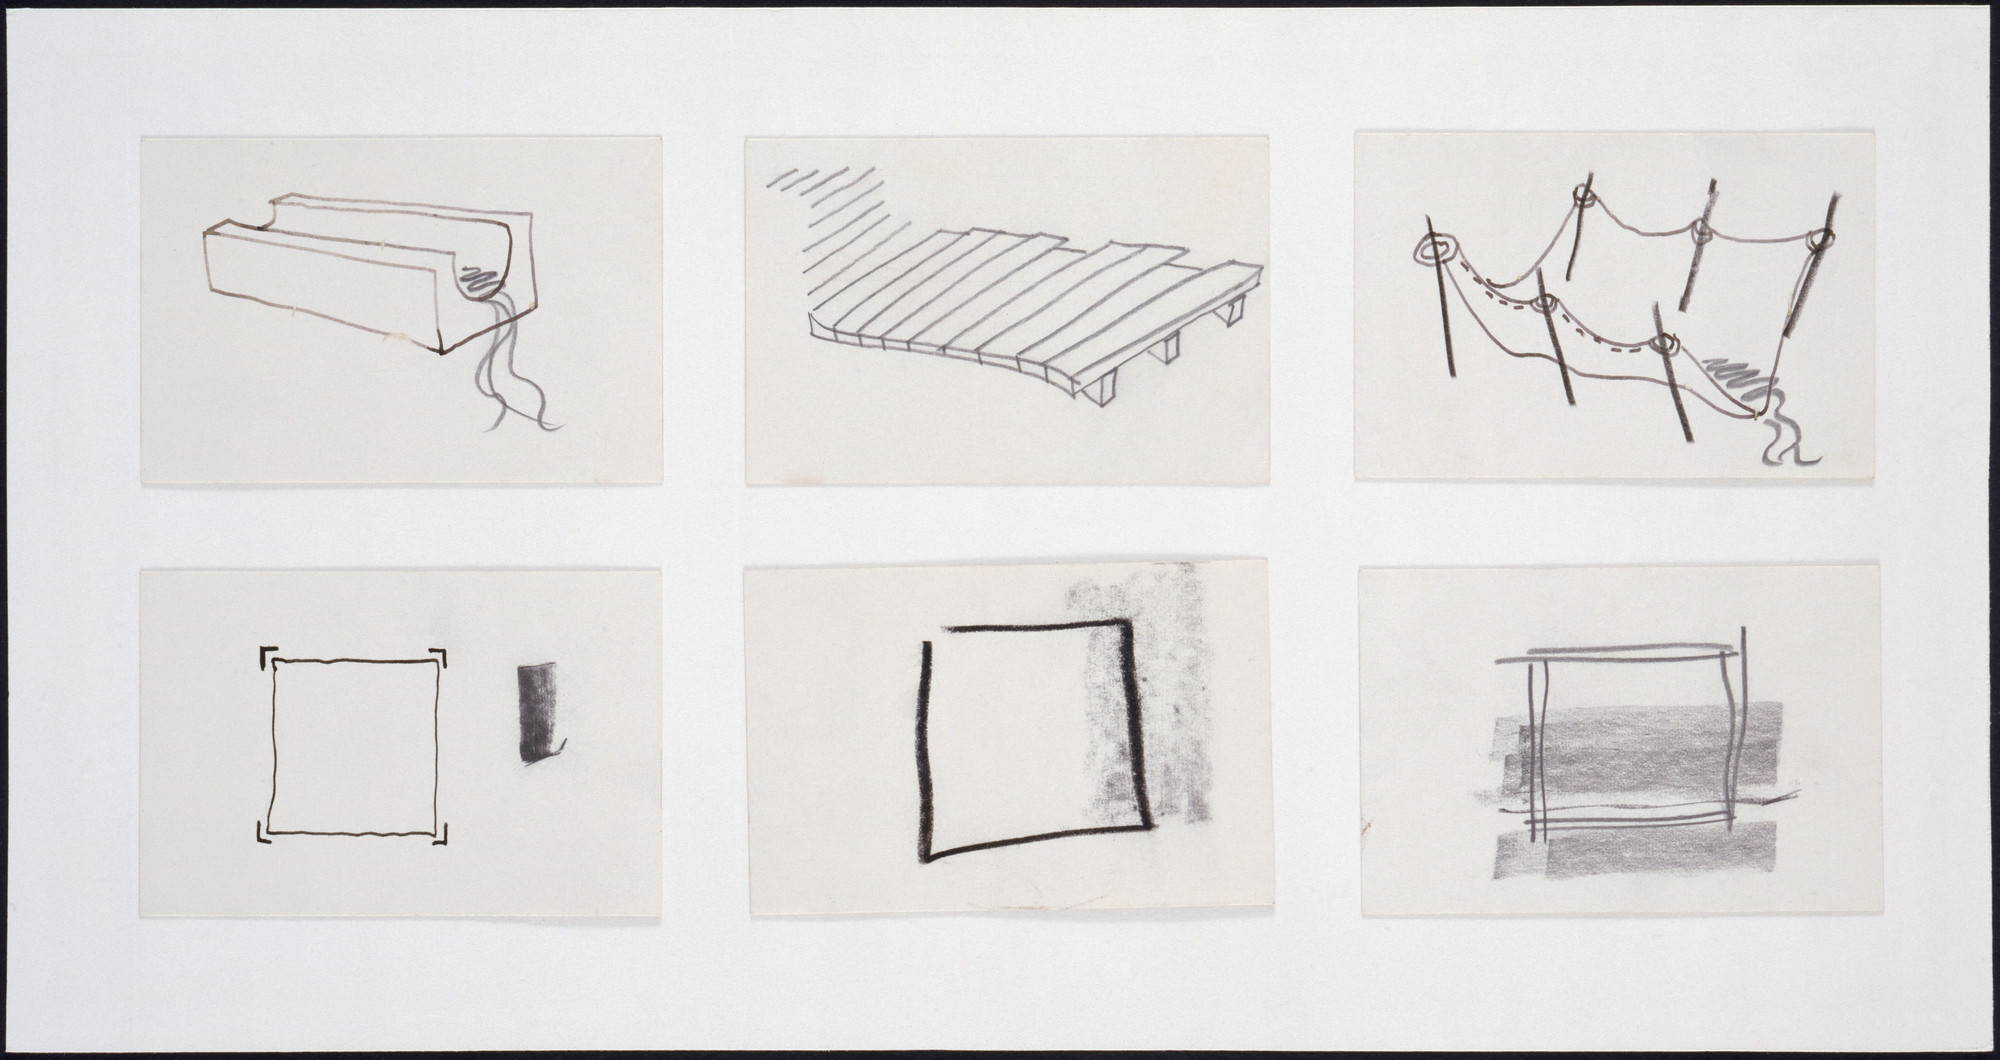 Cedric Price. Generator Project, White Oak, Florida, Plan and perspective sketches. 1978-80